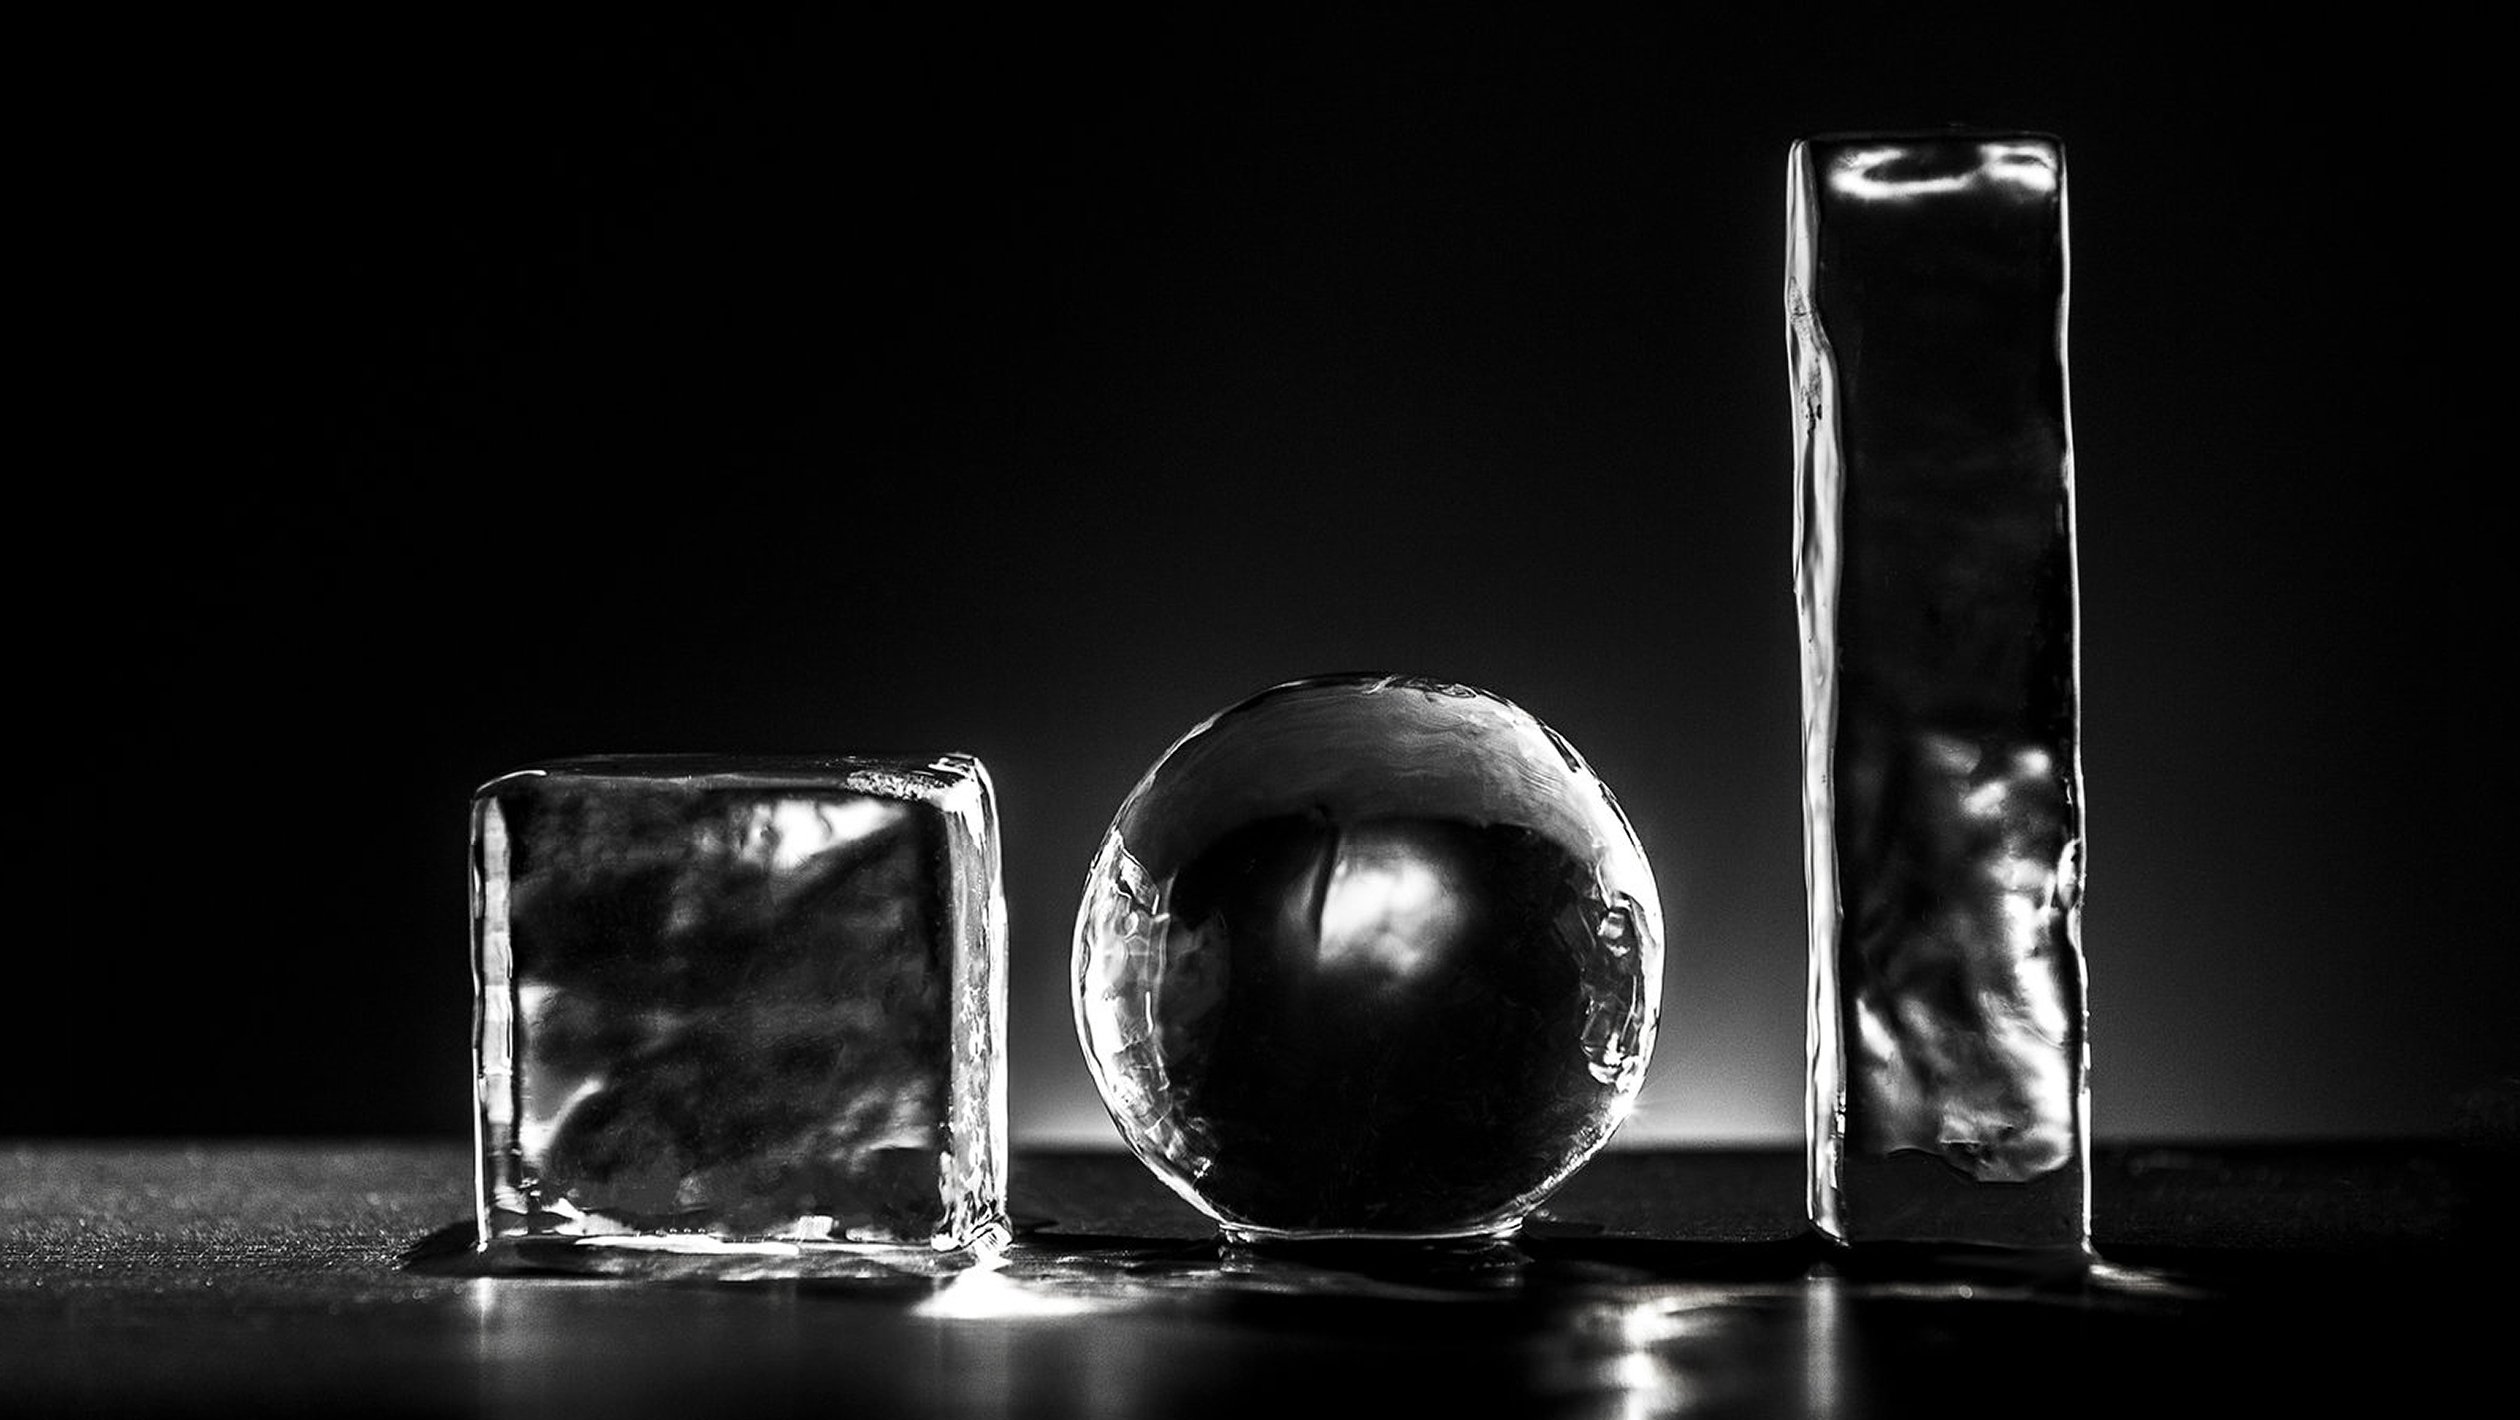 ice cubes in different shapes and sizes